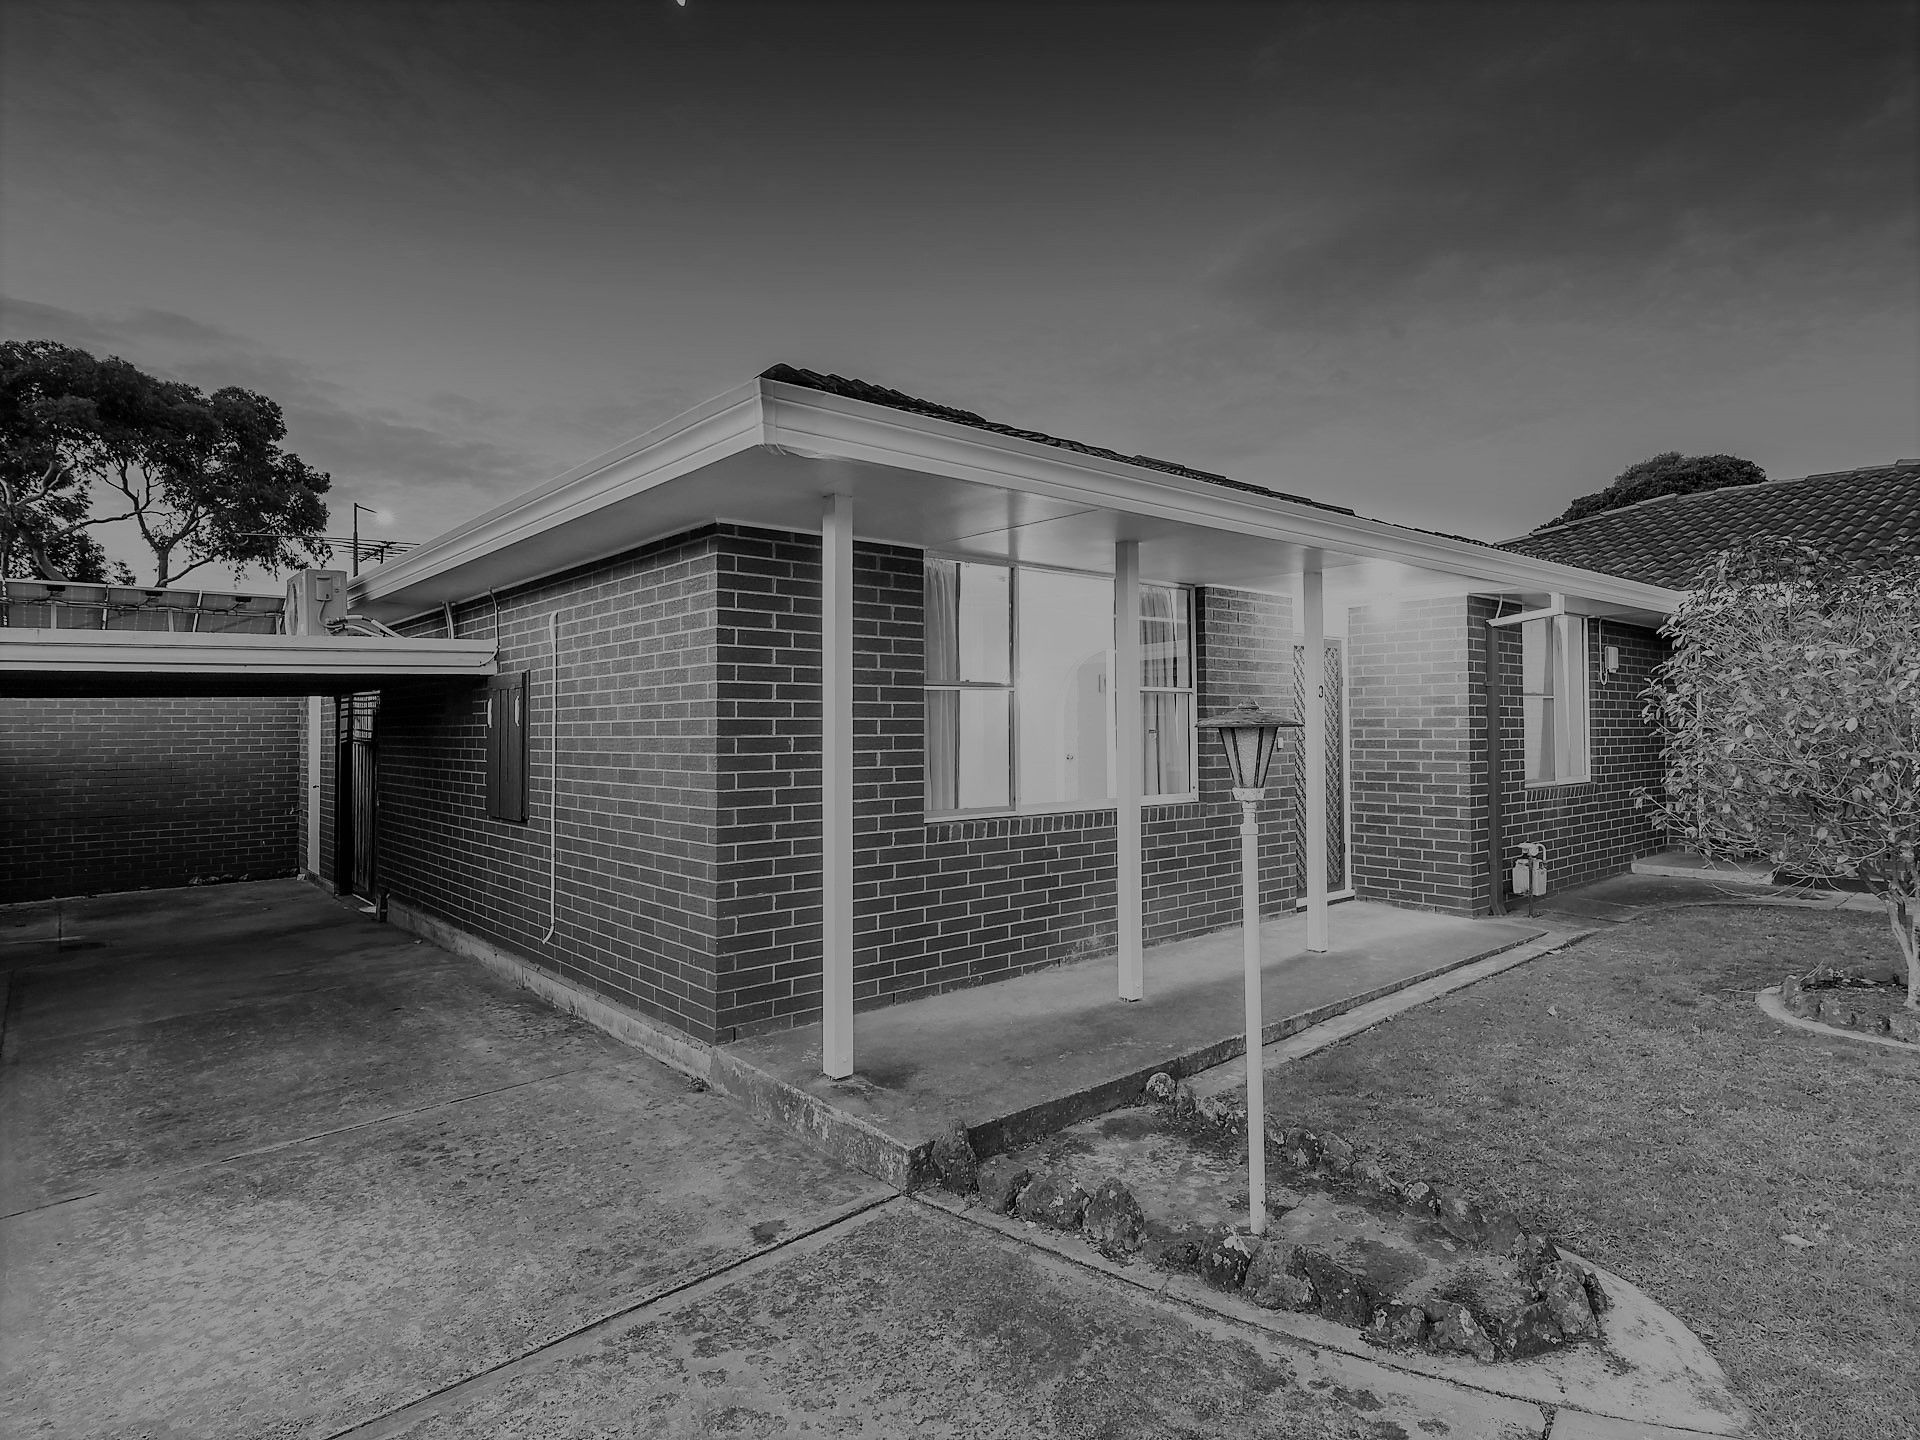 3/12-14 Fairfield Street, CRANBOURNE, VIC, 3977 - Image